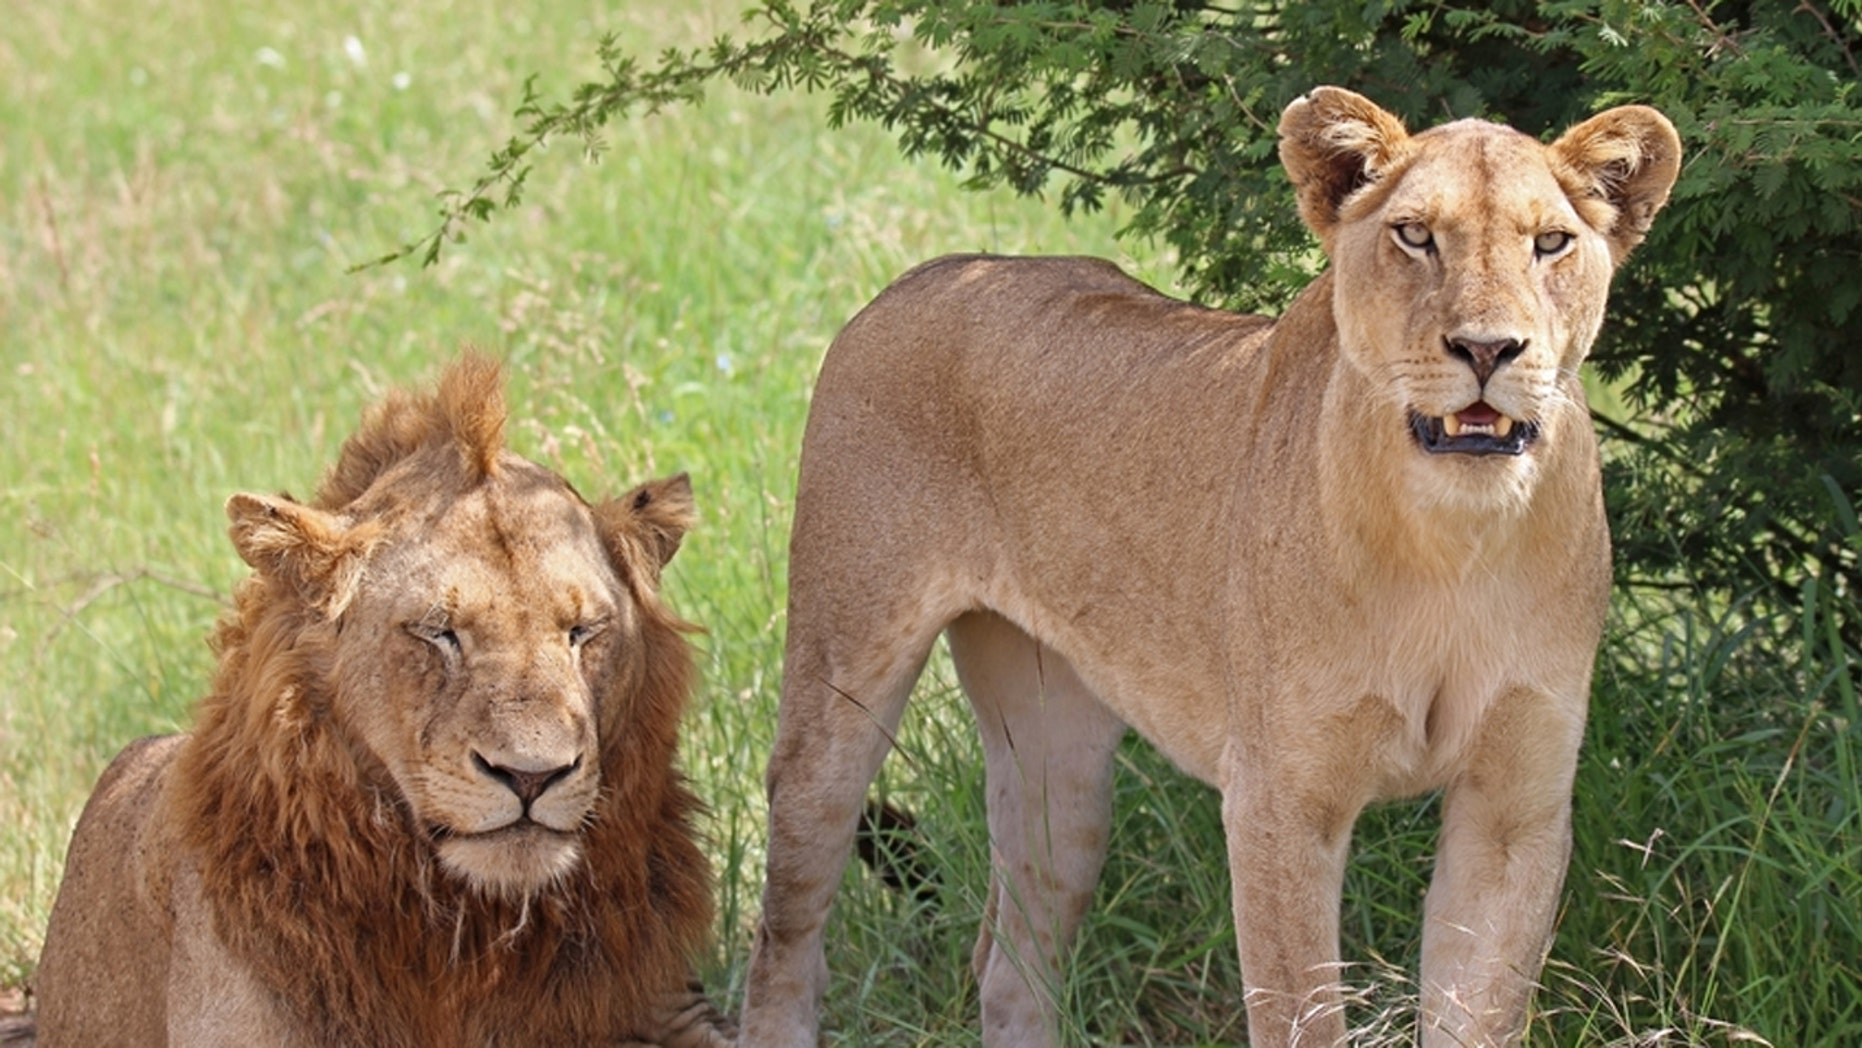 A pair of lions was able to escape their enclosure at zoological exhibit in germany.